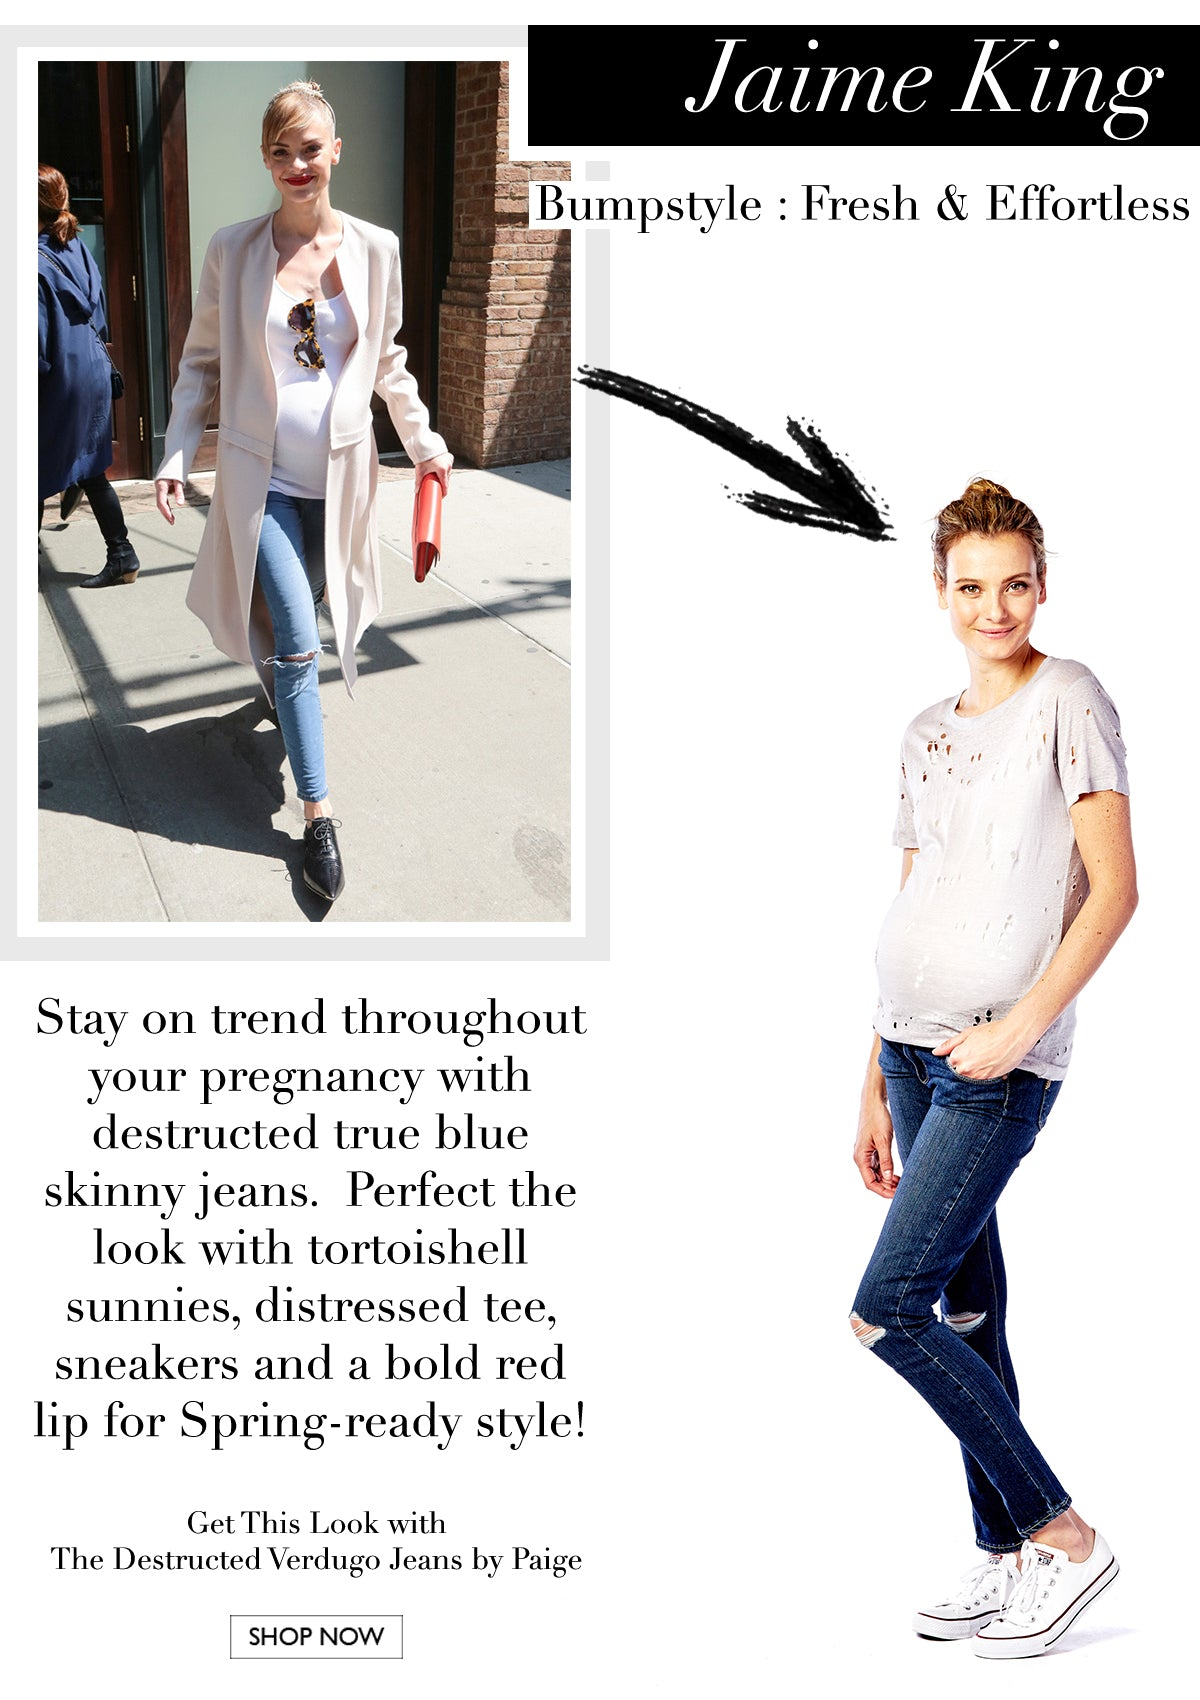 Get The Look - Jaime King